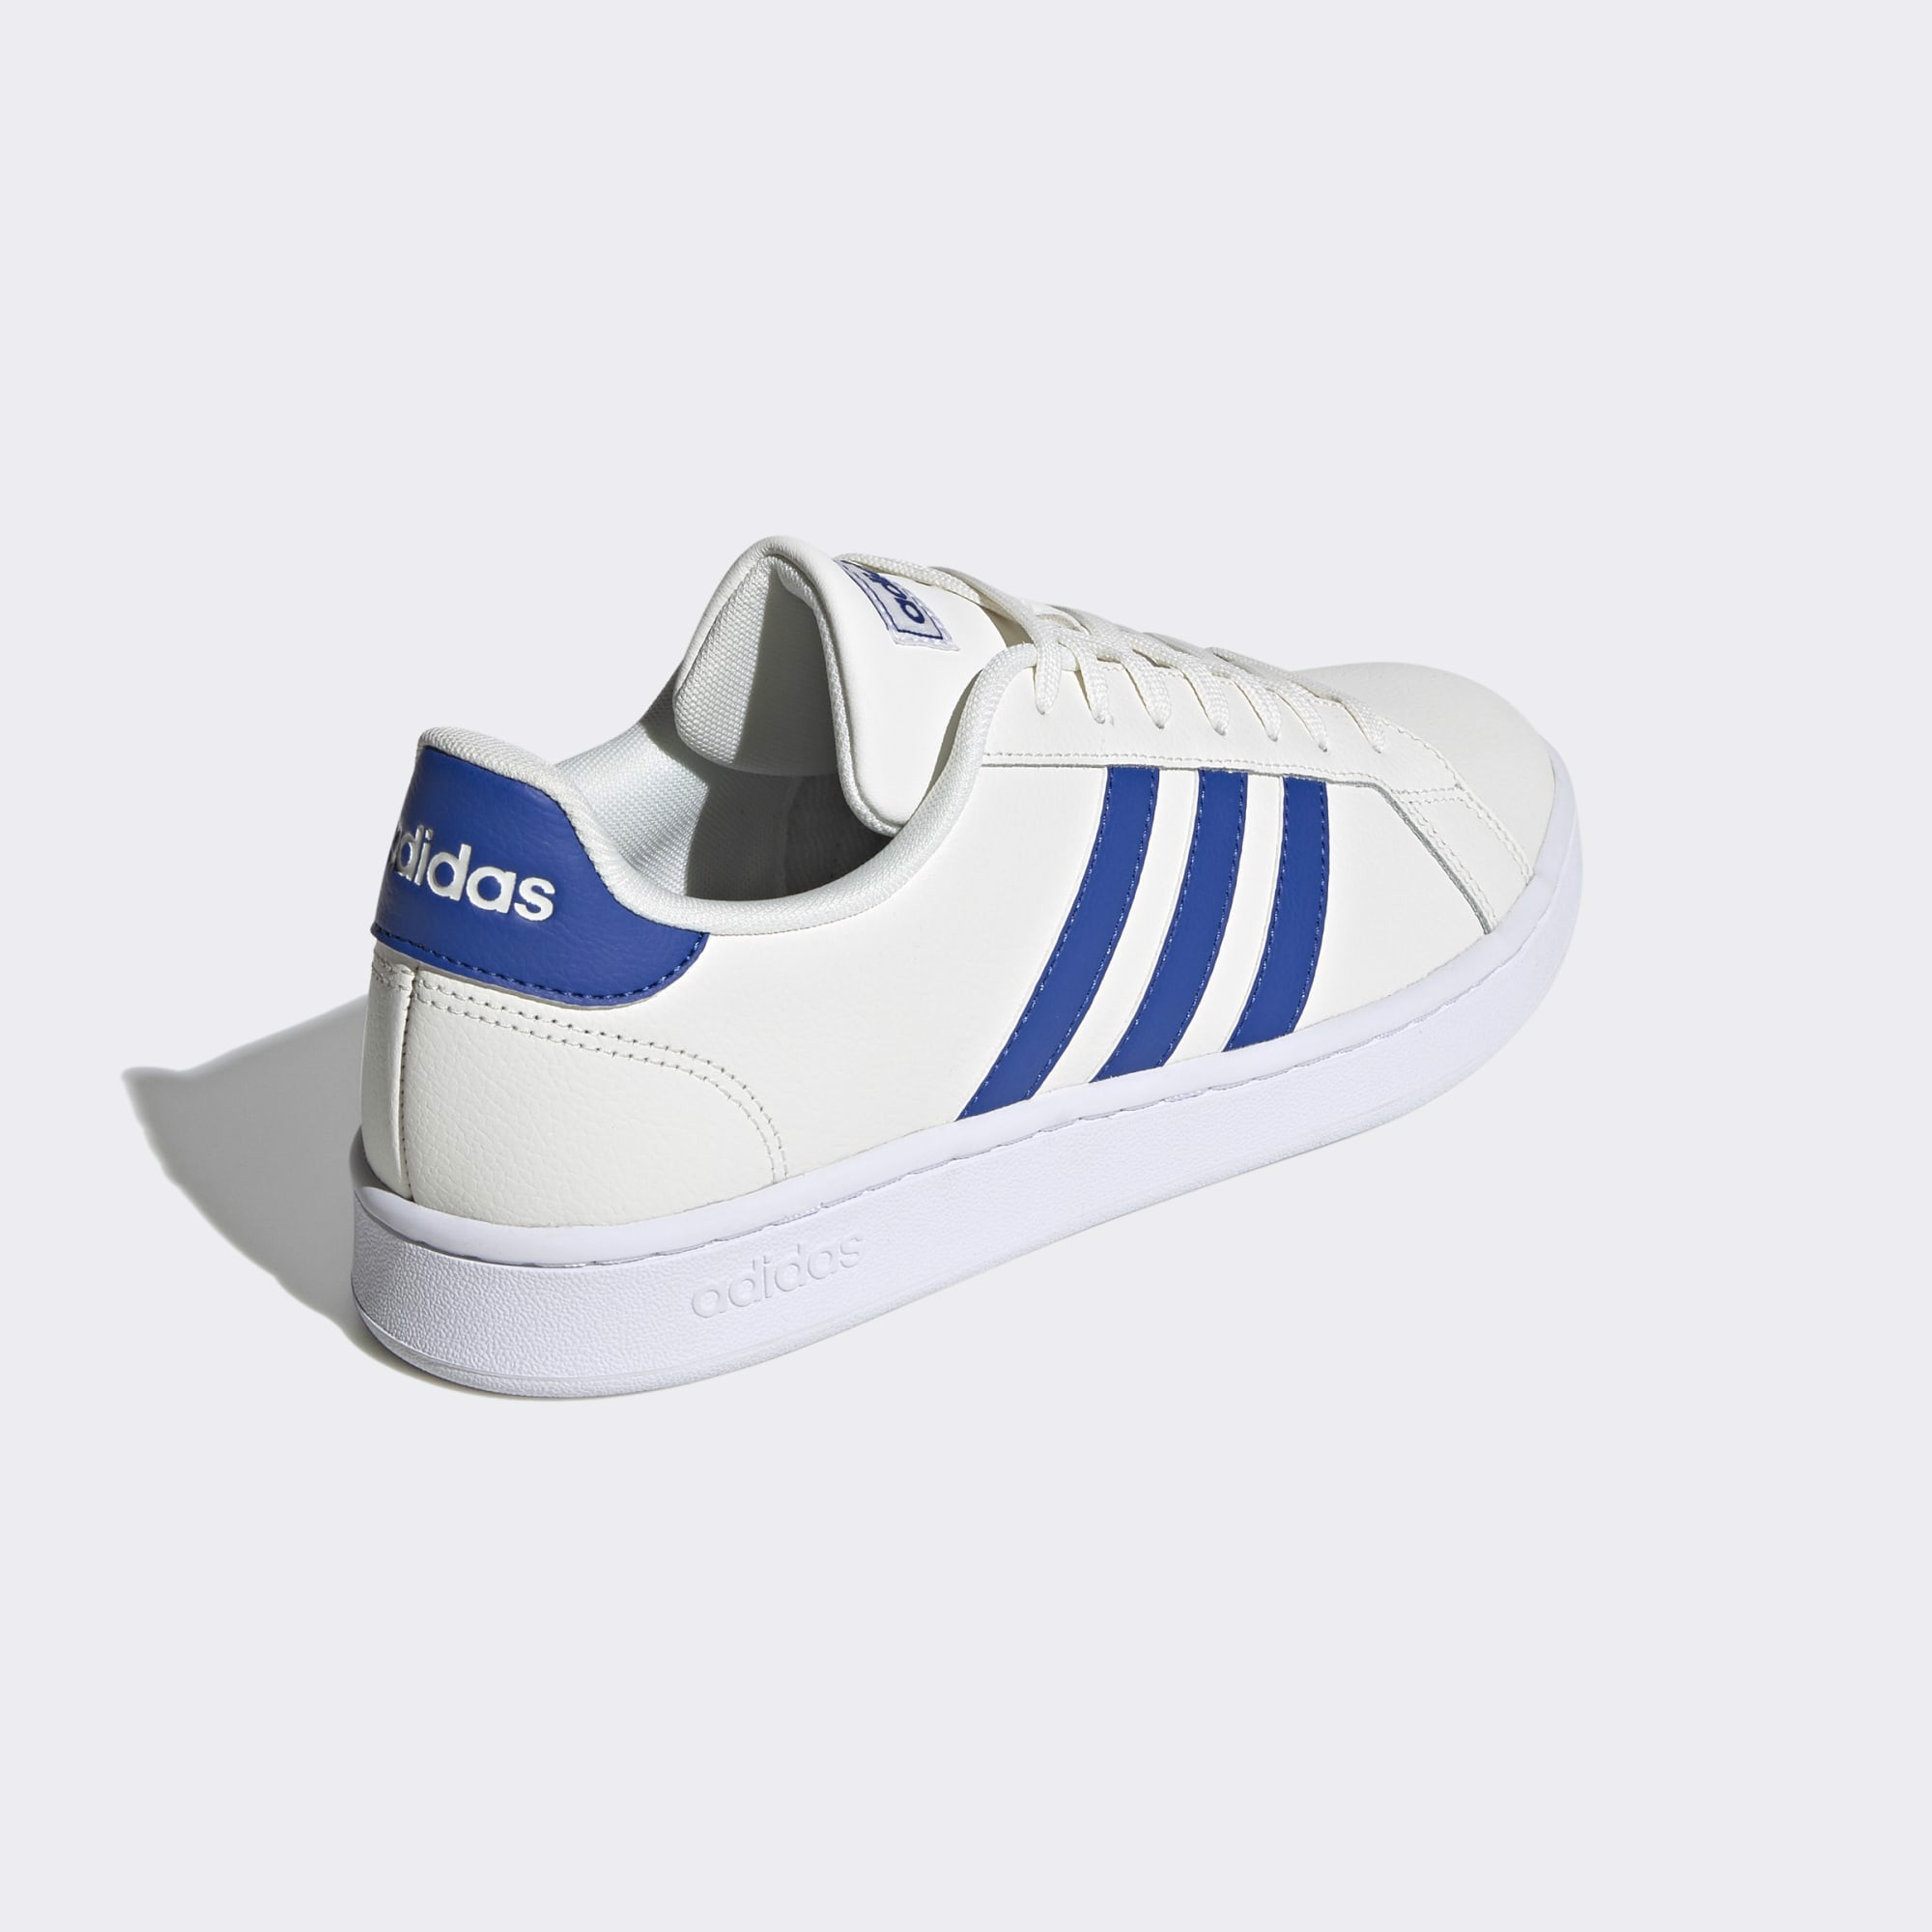 Giày Sneaker Nam Adidas M Grand Court